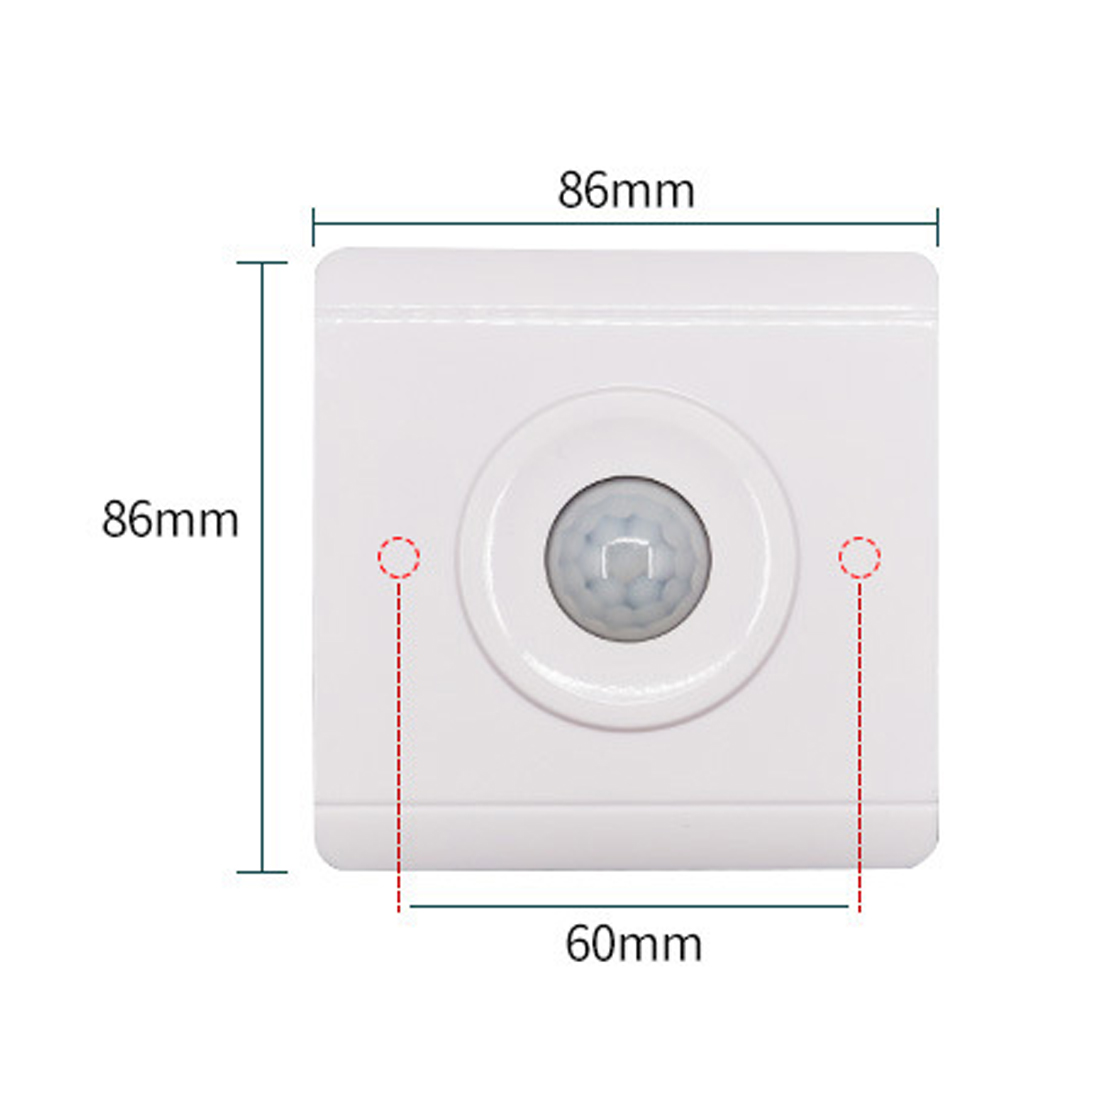 Body Motion Sensor Auto On off Lights Lamps 1pcs PIR Senser Infrared IR Switch Module